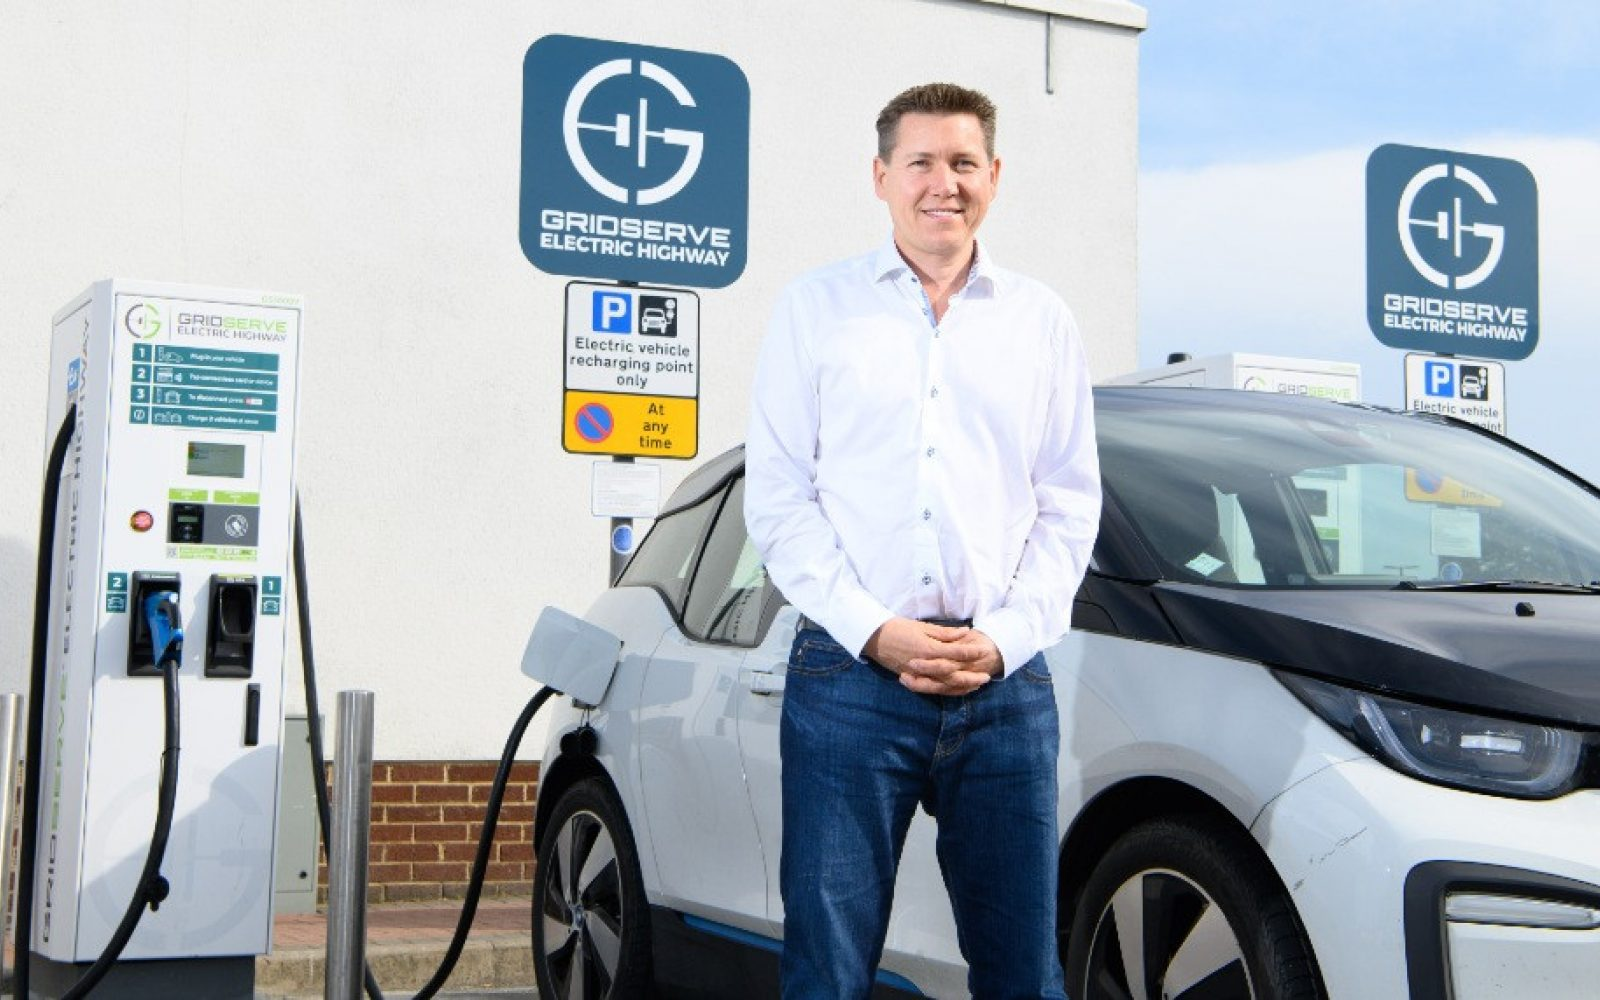 Toddington Harper, CEO of GRIDSERVE, at a GRIDSERVE Electric Highway charging site. Image: Zap-Map.